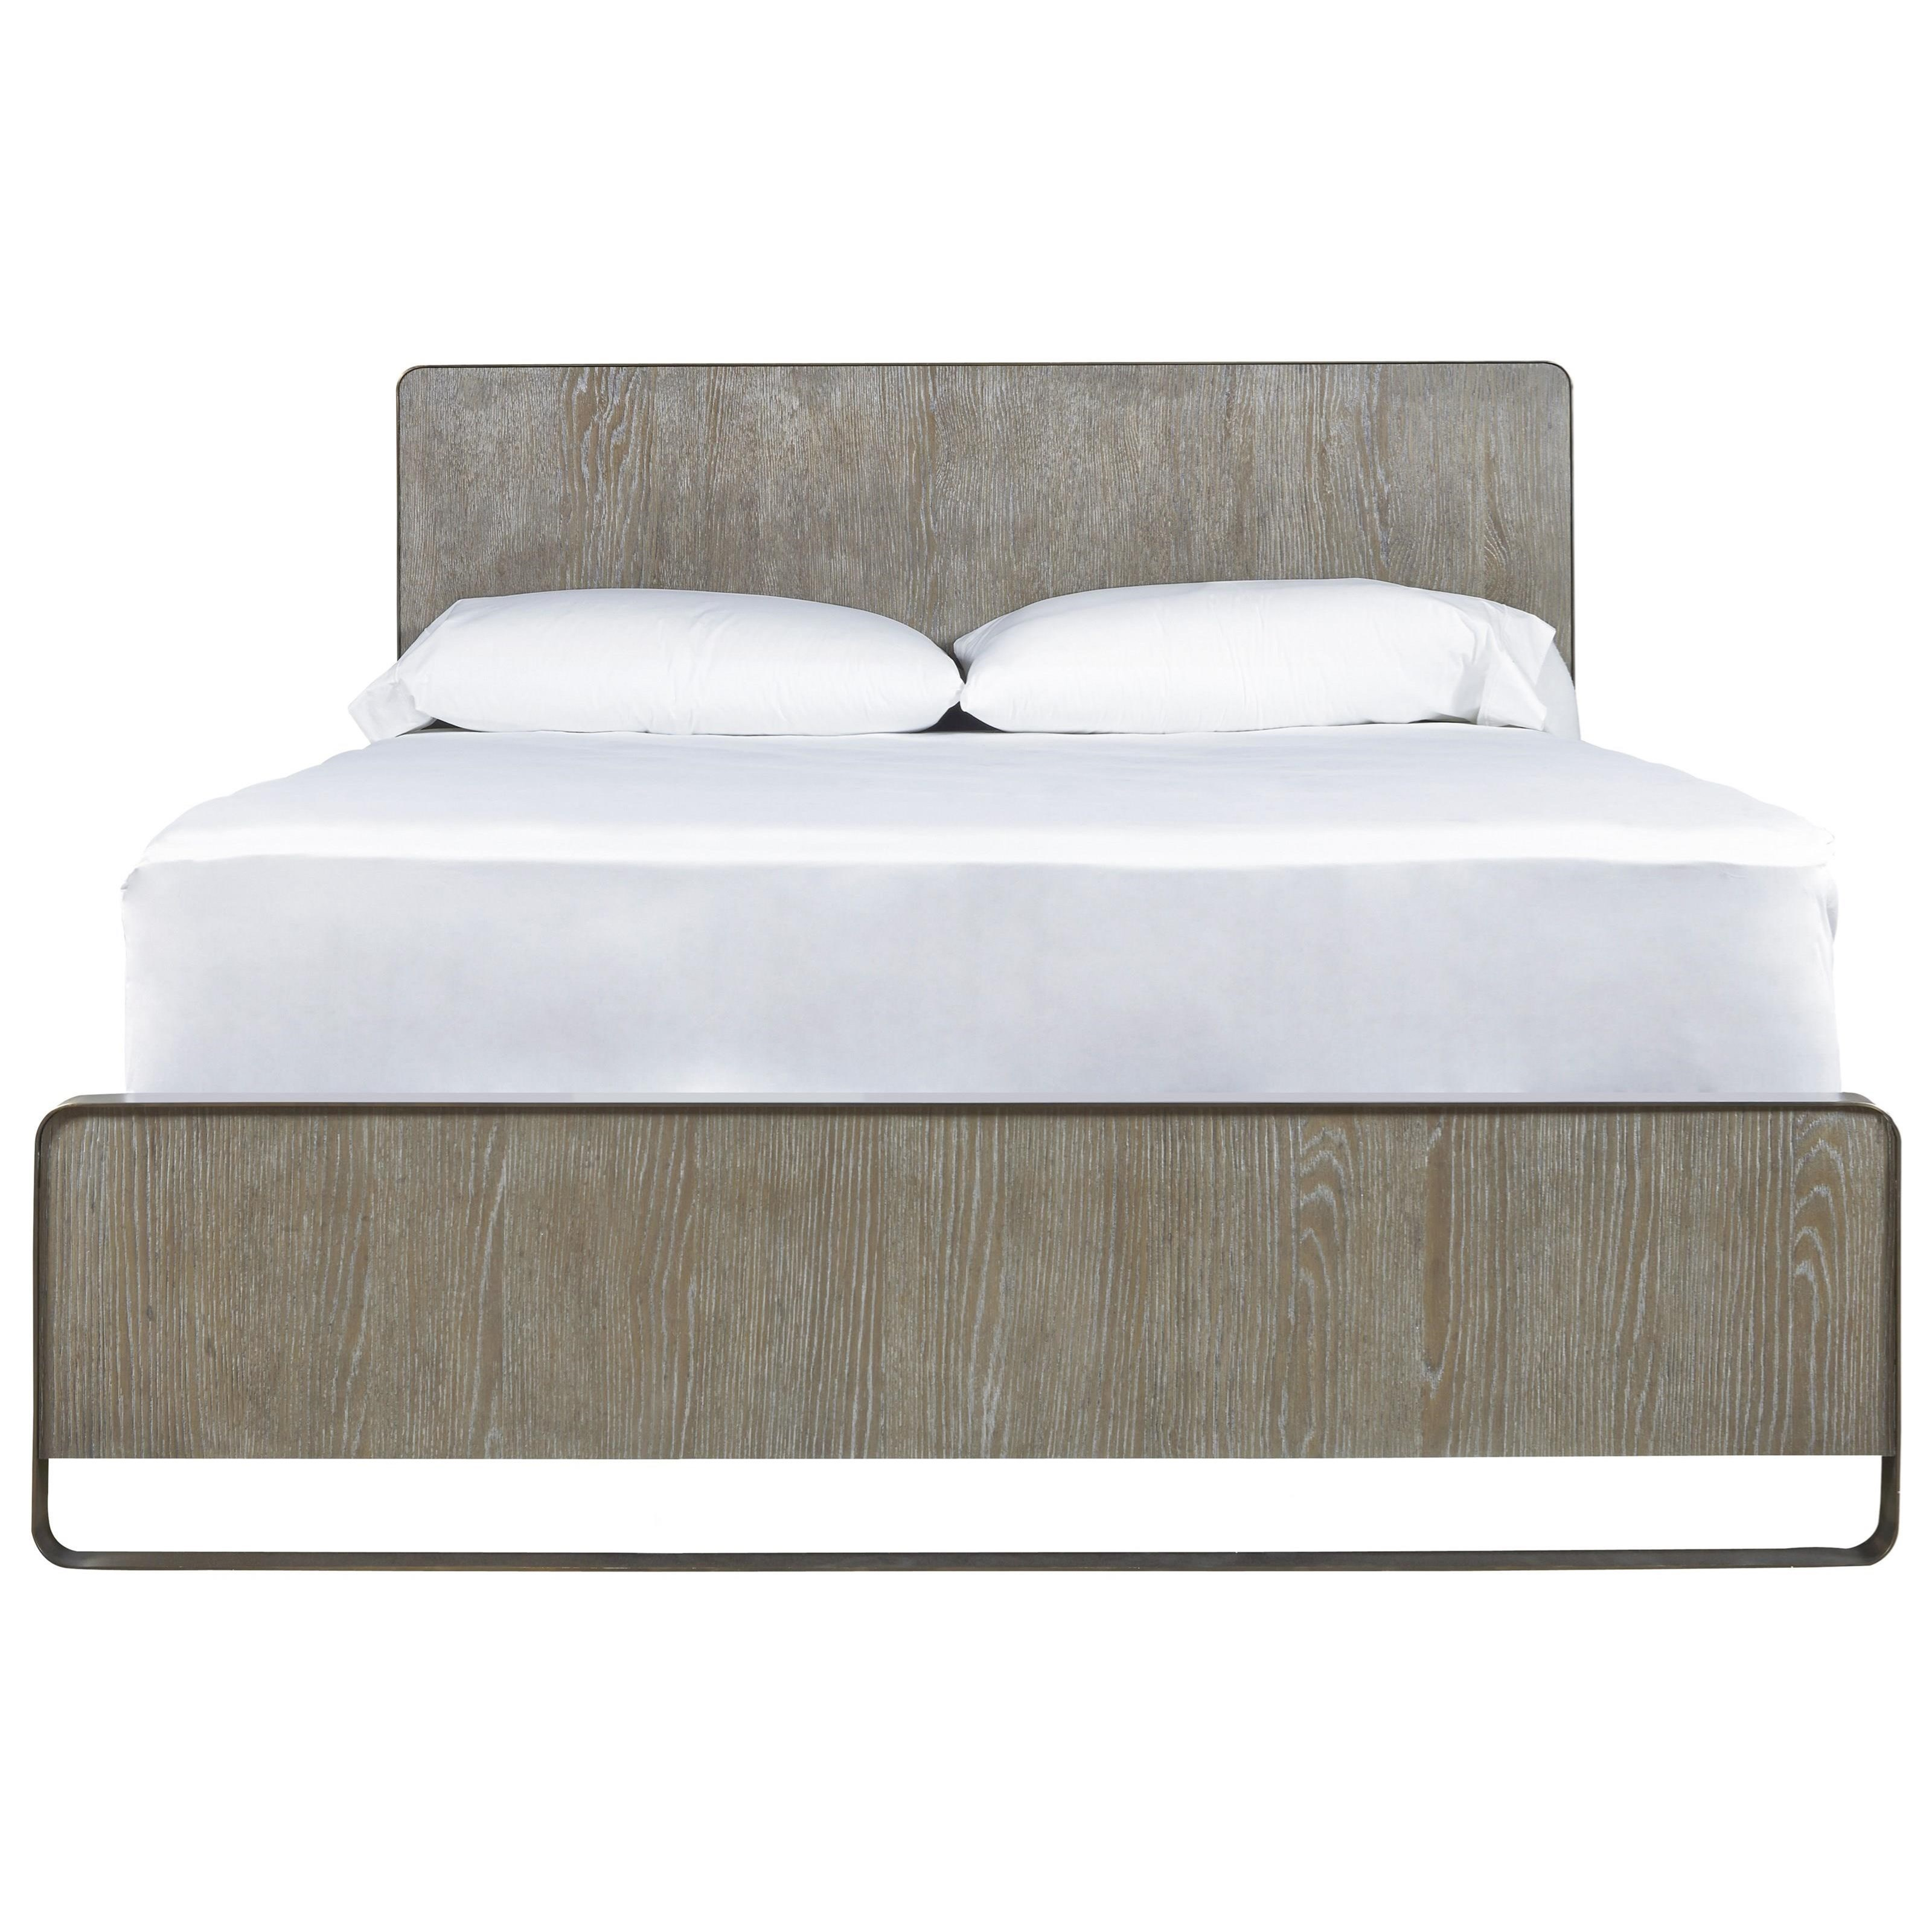 Keaton Cal King Bed with Metal Frame by Universal